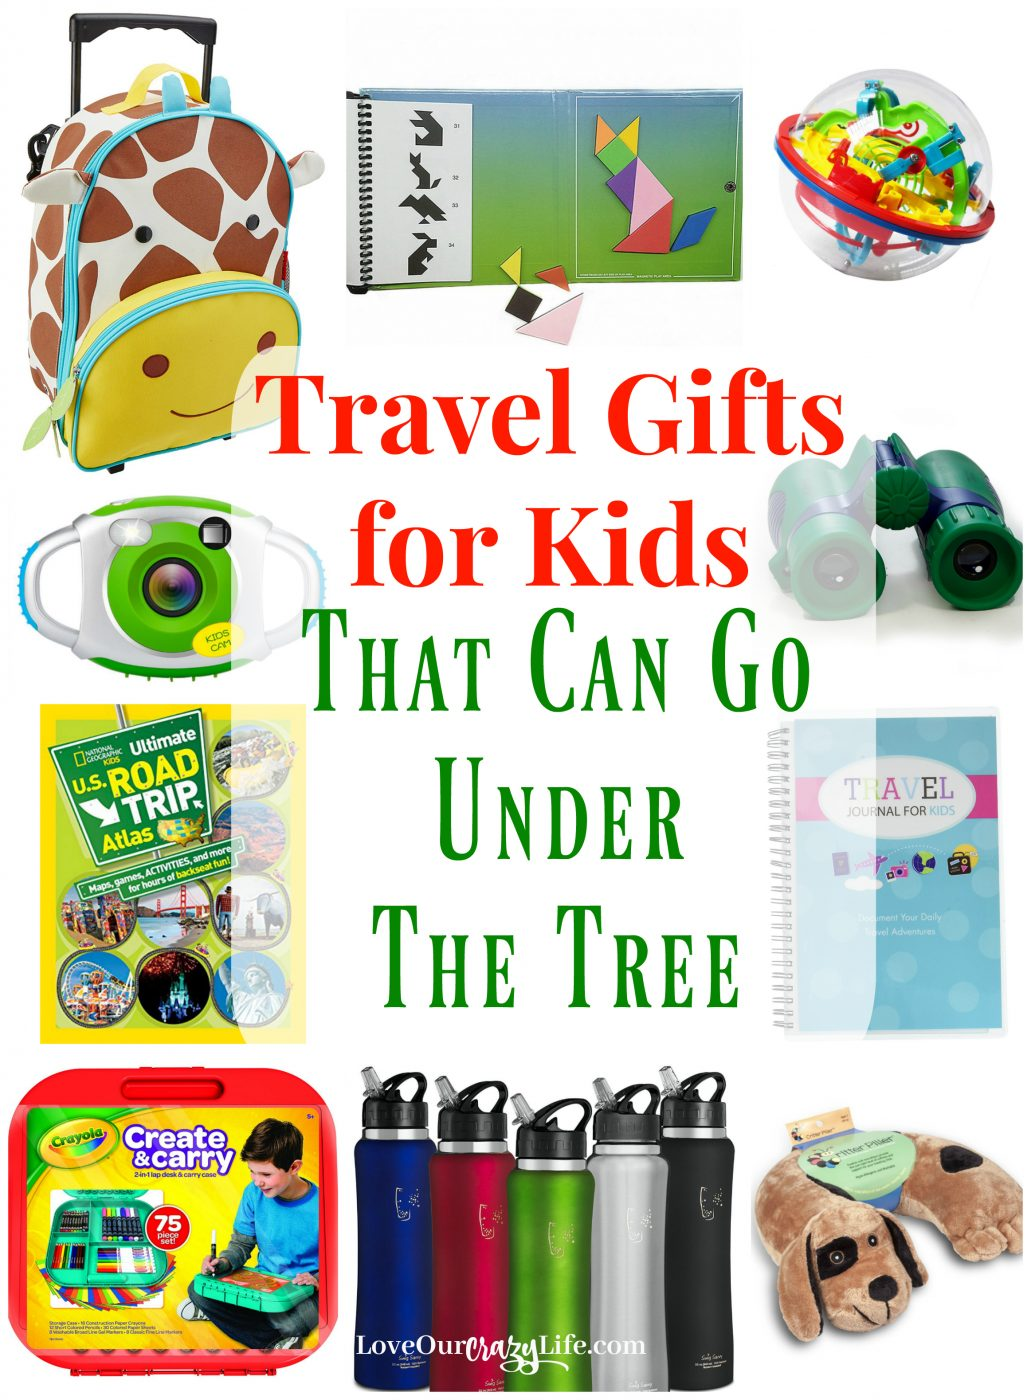 Giving experience gifts or a vacation for Christmas is awesome, but kids want something they can unwrap! Check out these great travel gifts for kids that can fit under the tree!  Travel | Vacation | Family Travel | Gift Guide | Gift Ideas | Travel With kids |  #Travel #GiftIdeas #KidsGifts